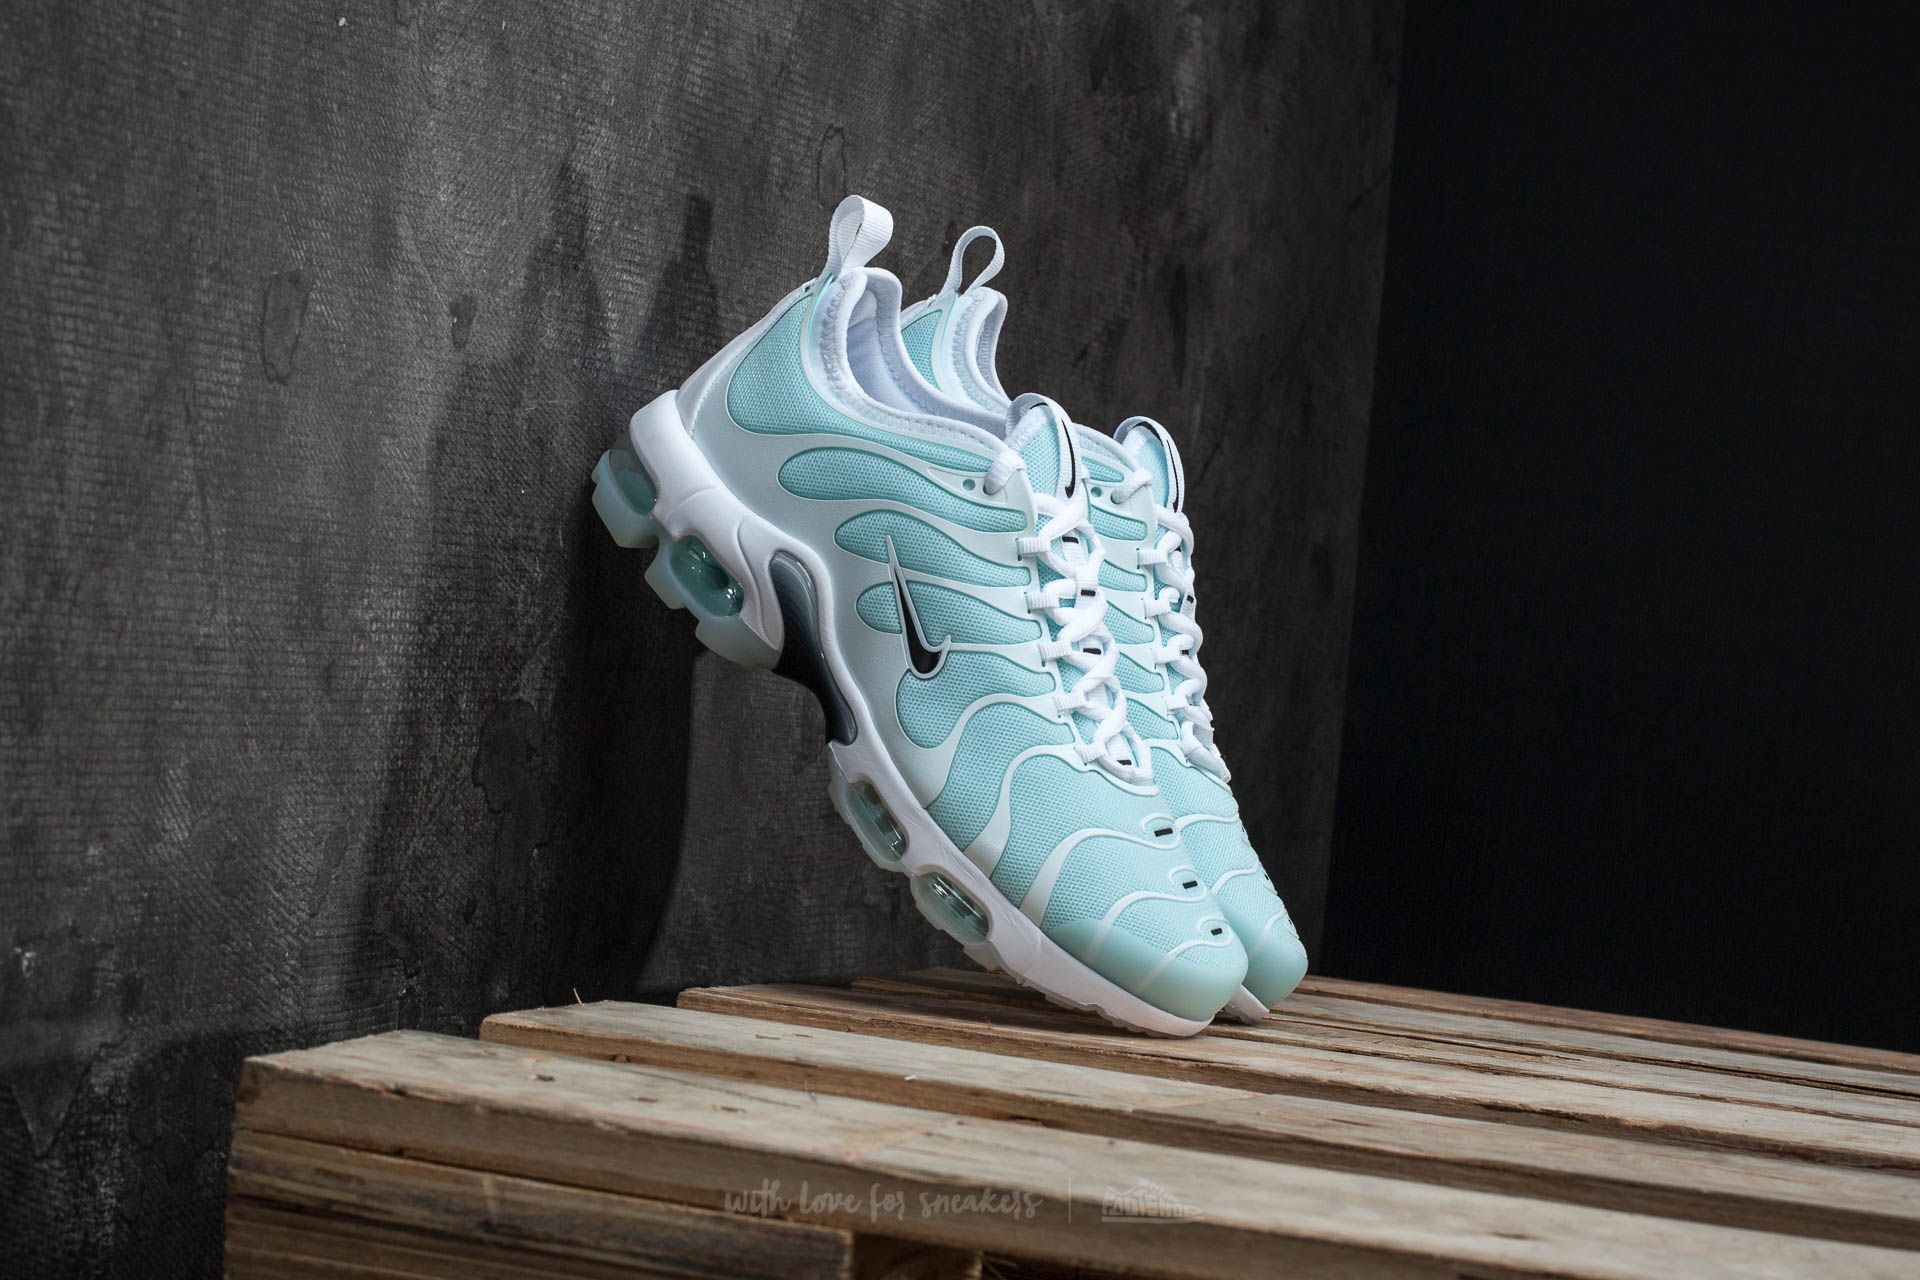 Nike Wmns Air Max Plus TN Ultra Glacier Blue/ Black-White | Footshop